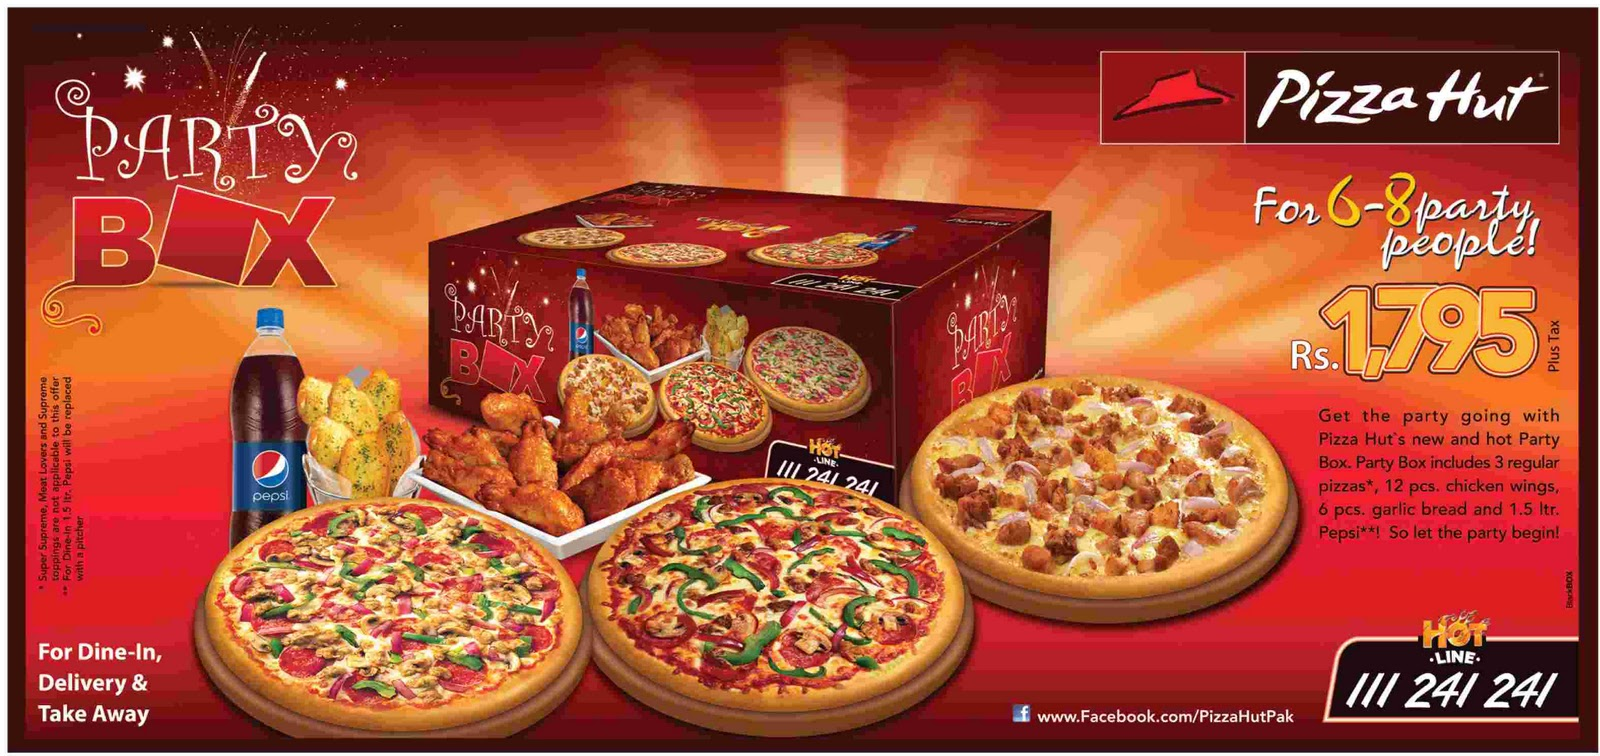 Meals amp; Deals: New and Hot Party Box Meal Deal by Pizza Hut